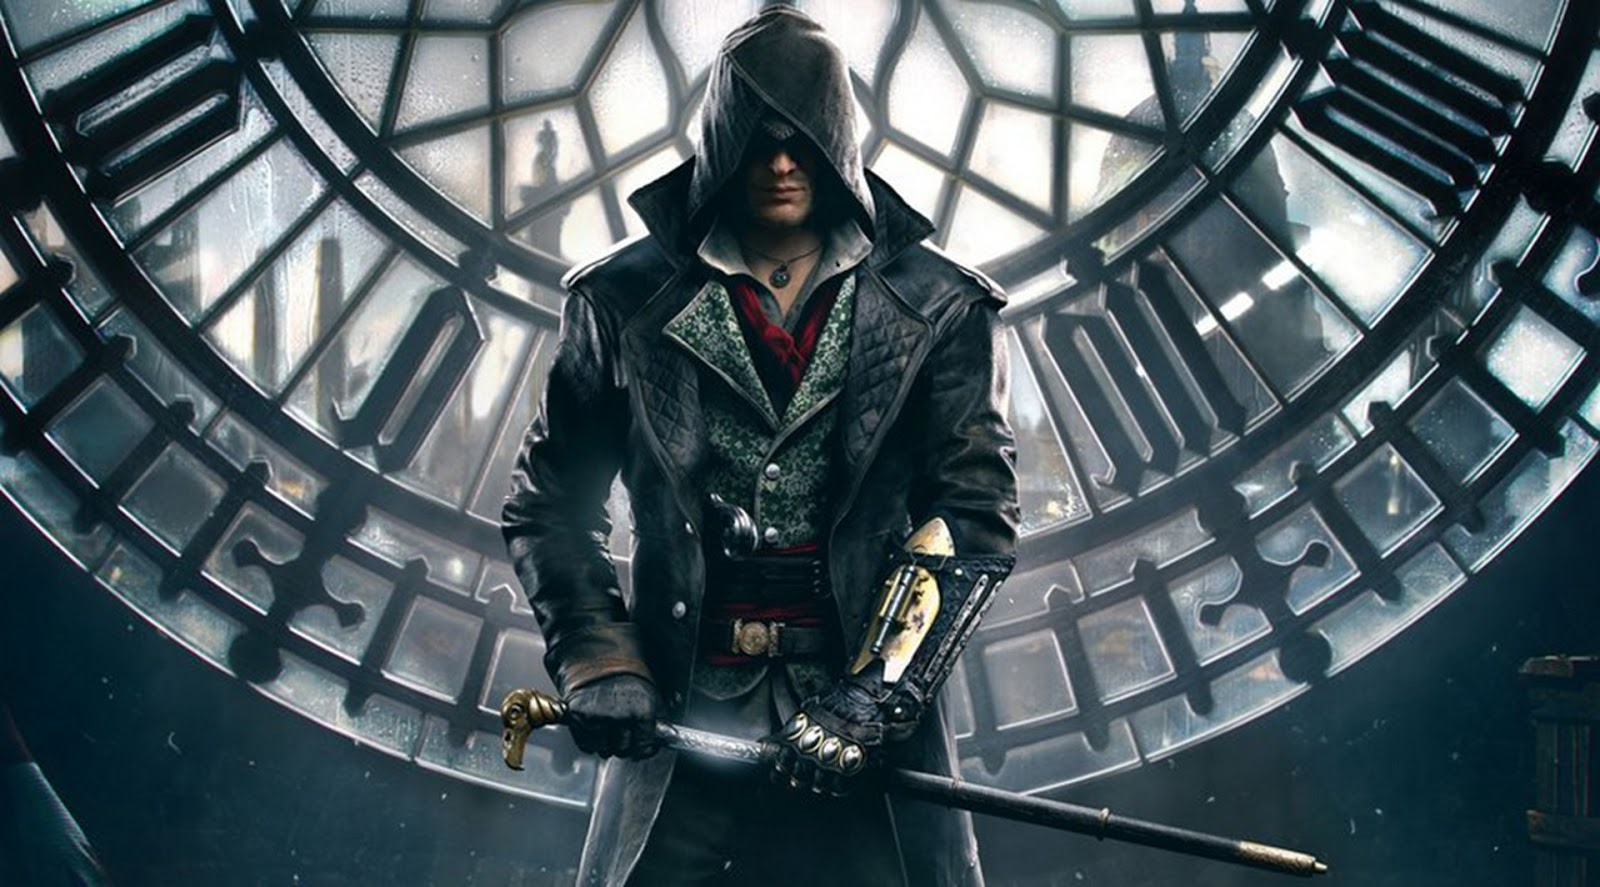 Assassin S Creed Syndicate Wallpaper Gallery Wallpaper